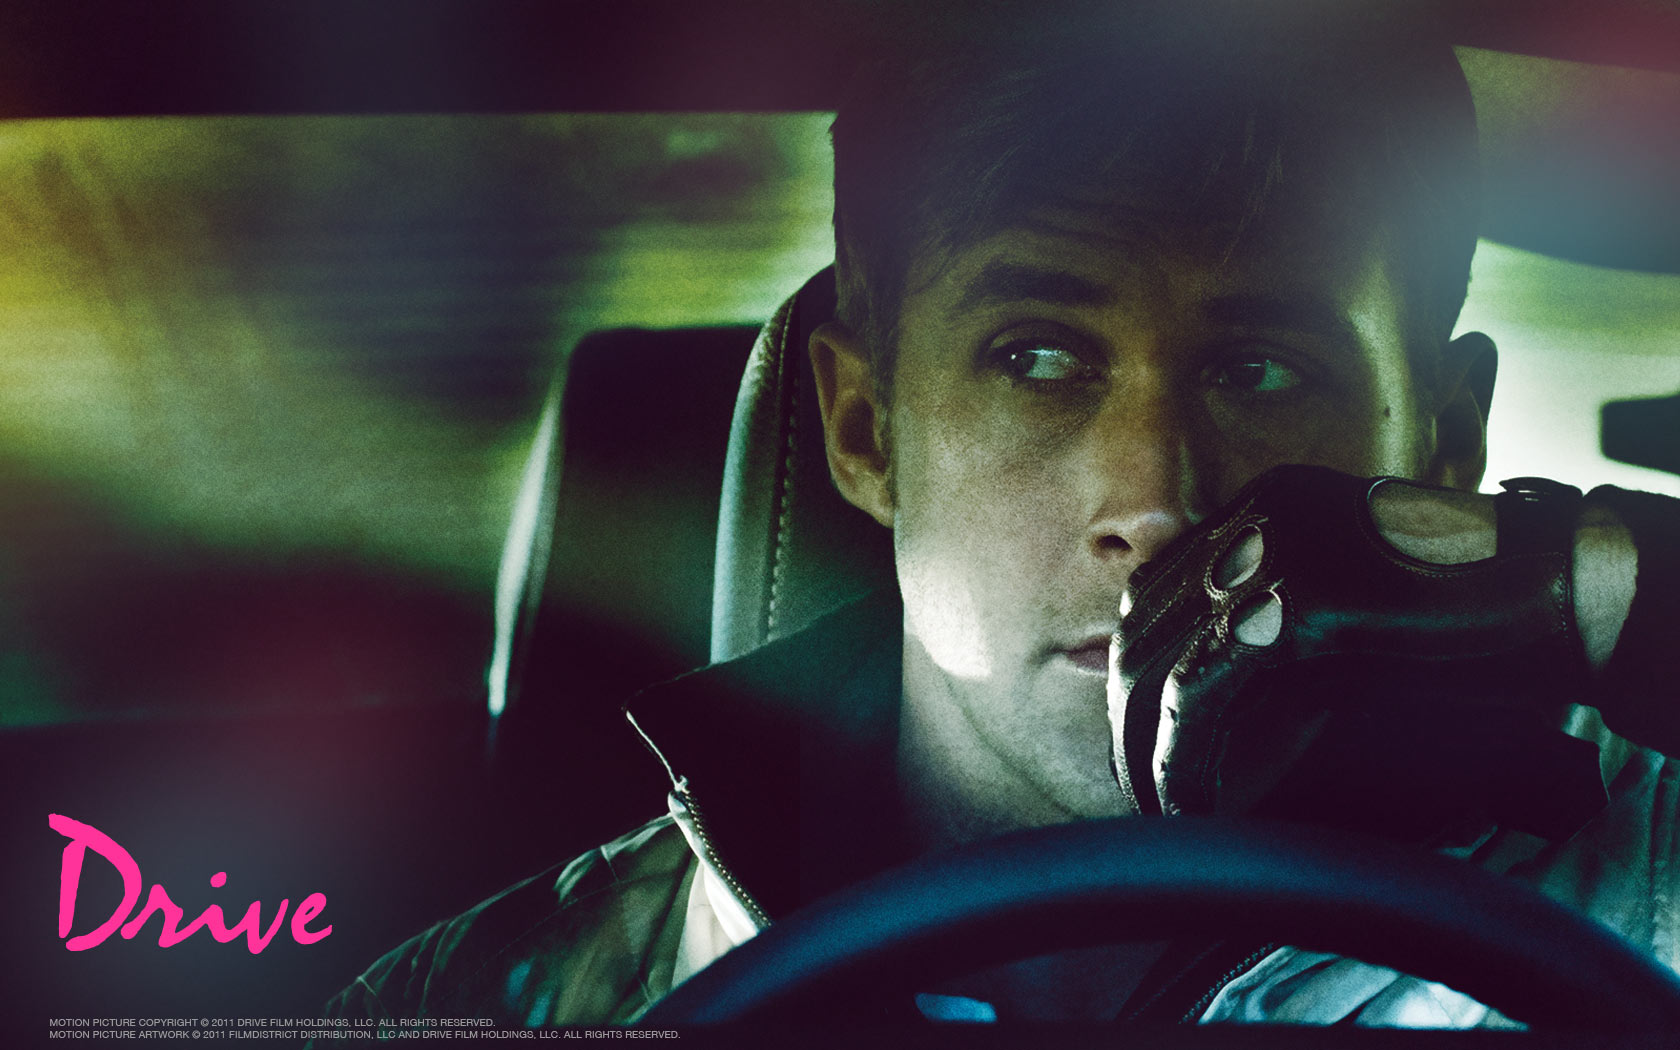 drive movie 1920x1080 wallpaper Wallpaper –Free Wallpapers Download ...